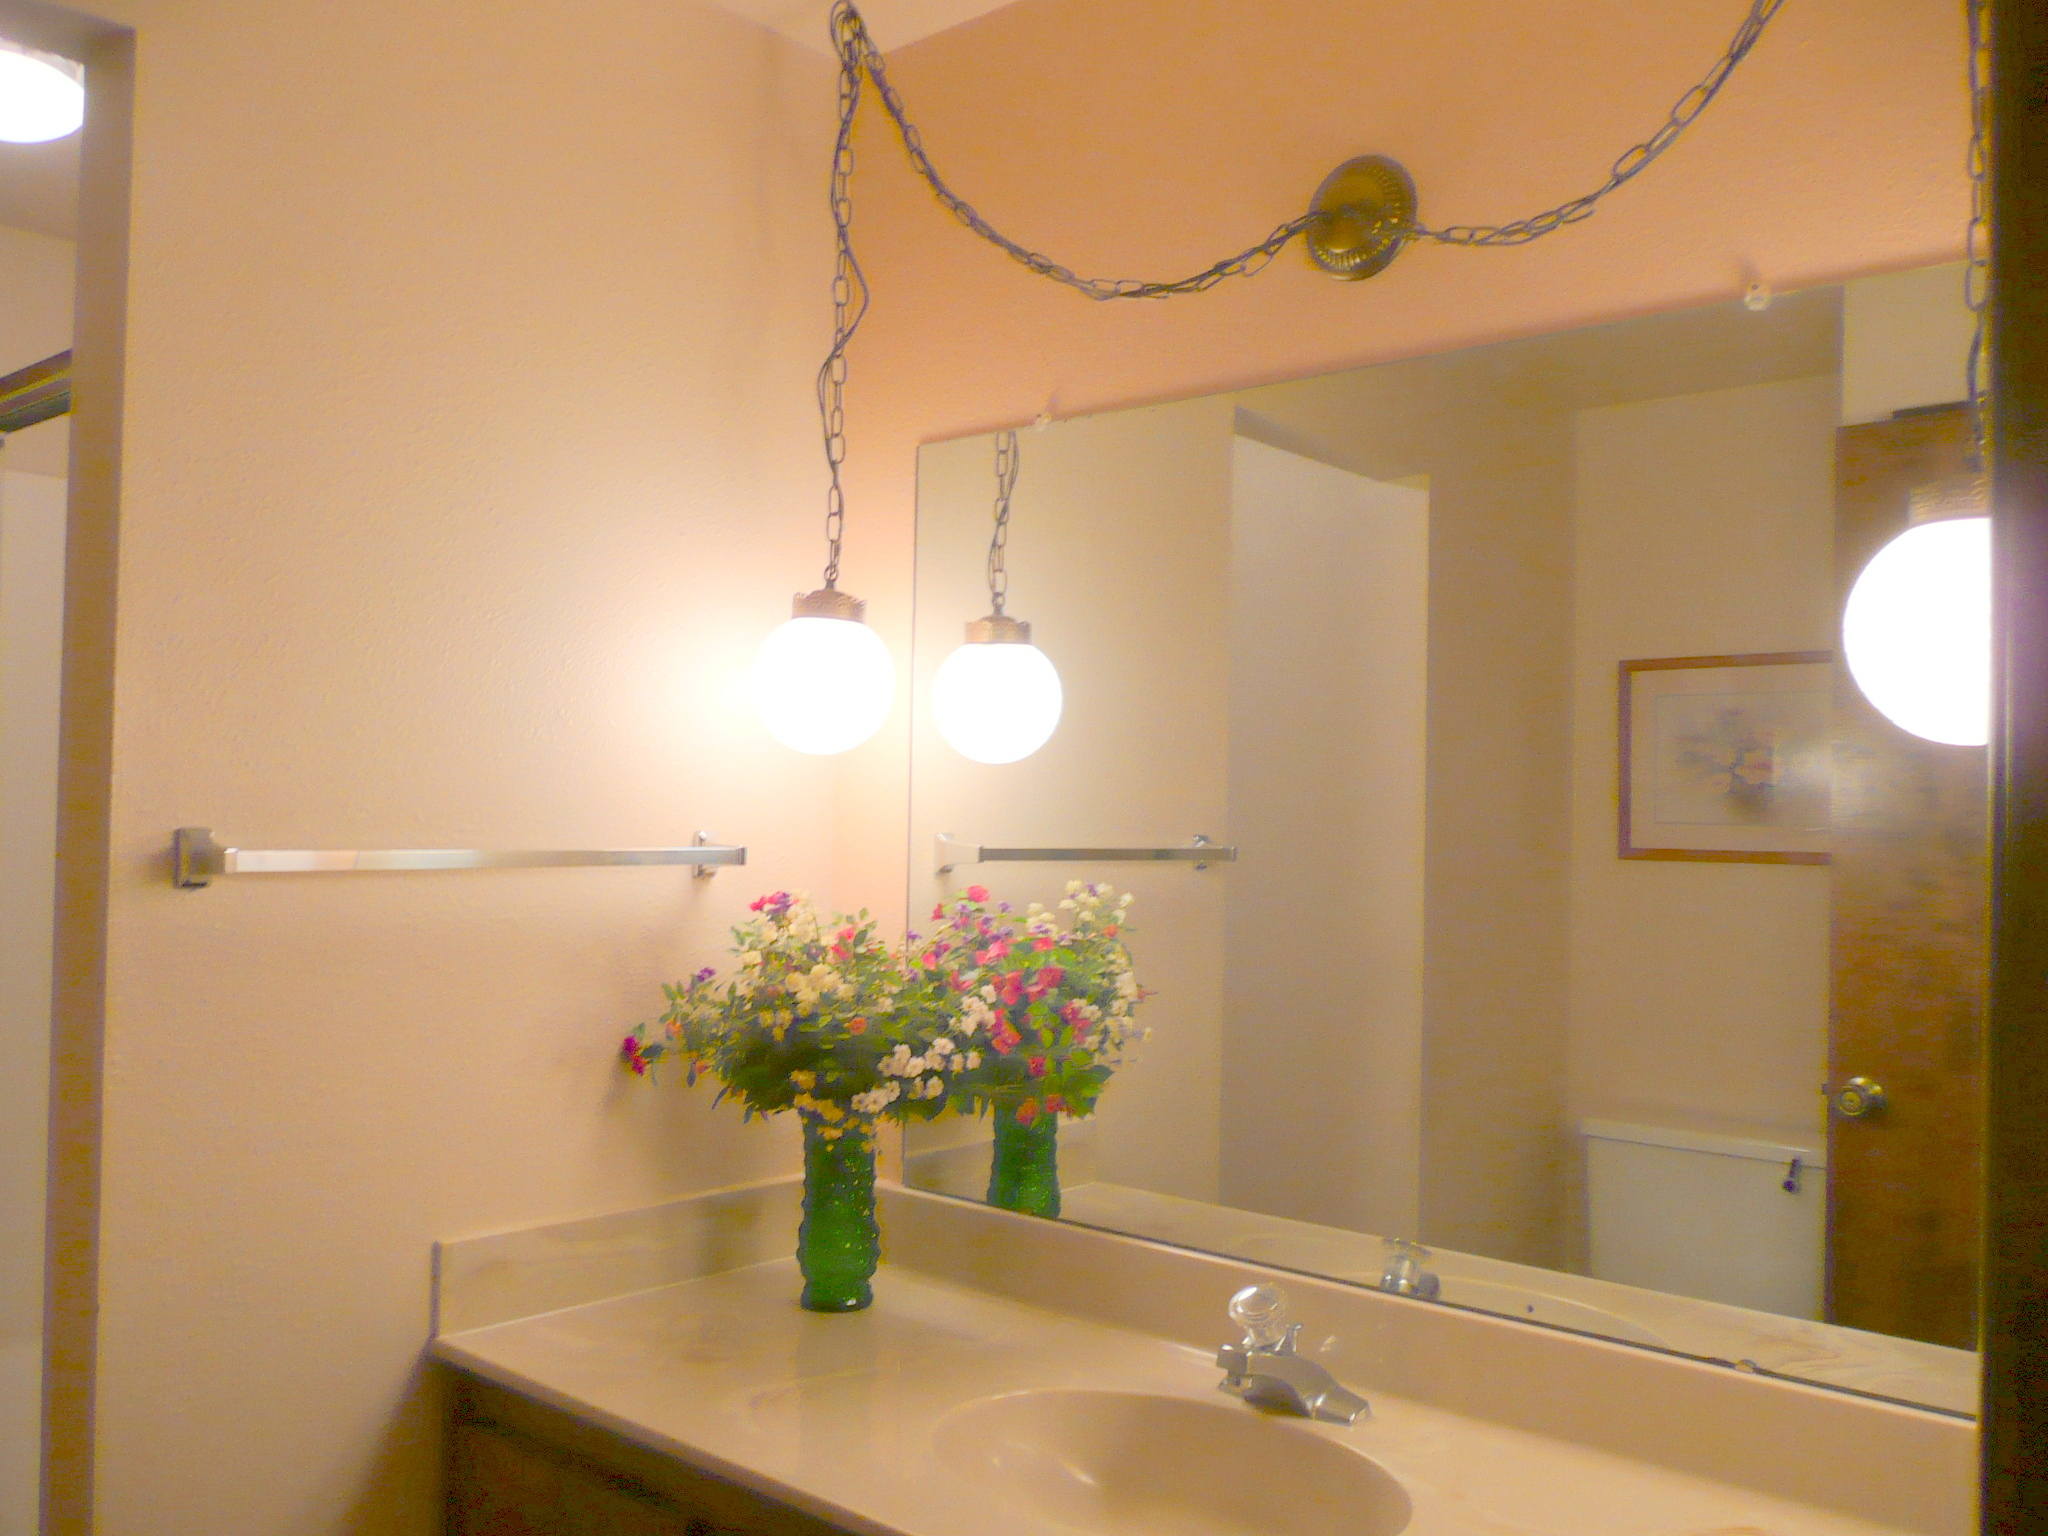 Bathroom Vanity Lights Over Mirror updating bathroom vanity lighting – tips for home sellers | home